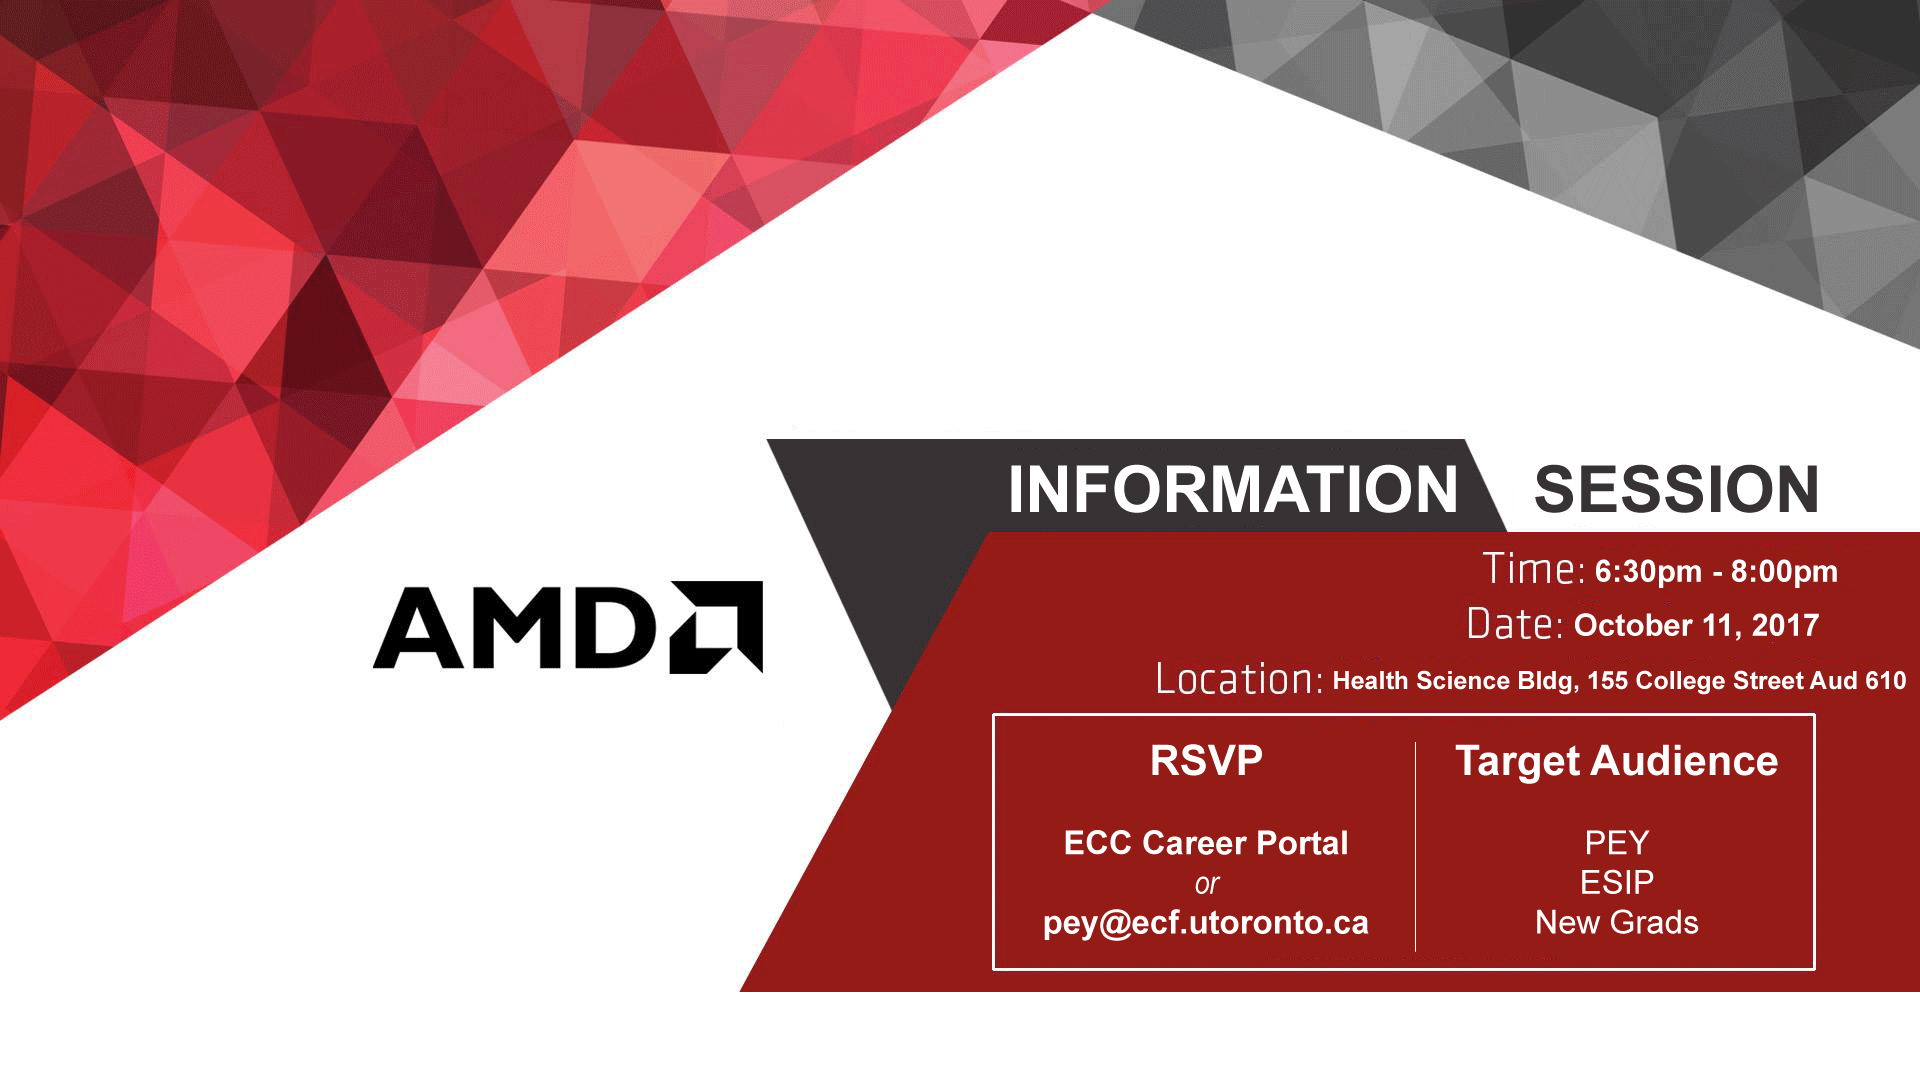 Amd Info Session Pey Oct 11 2017 06 30 Pm To 08 00 Pm Jobs And Professional Experience Computer Science Community